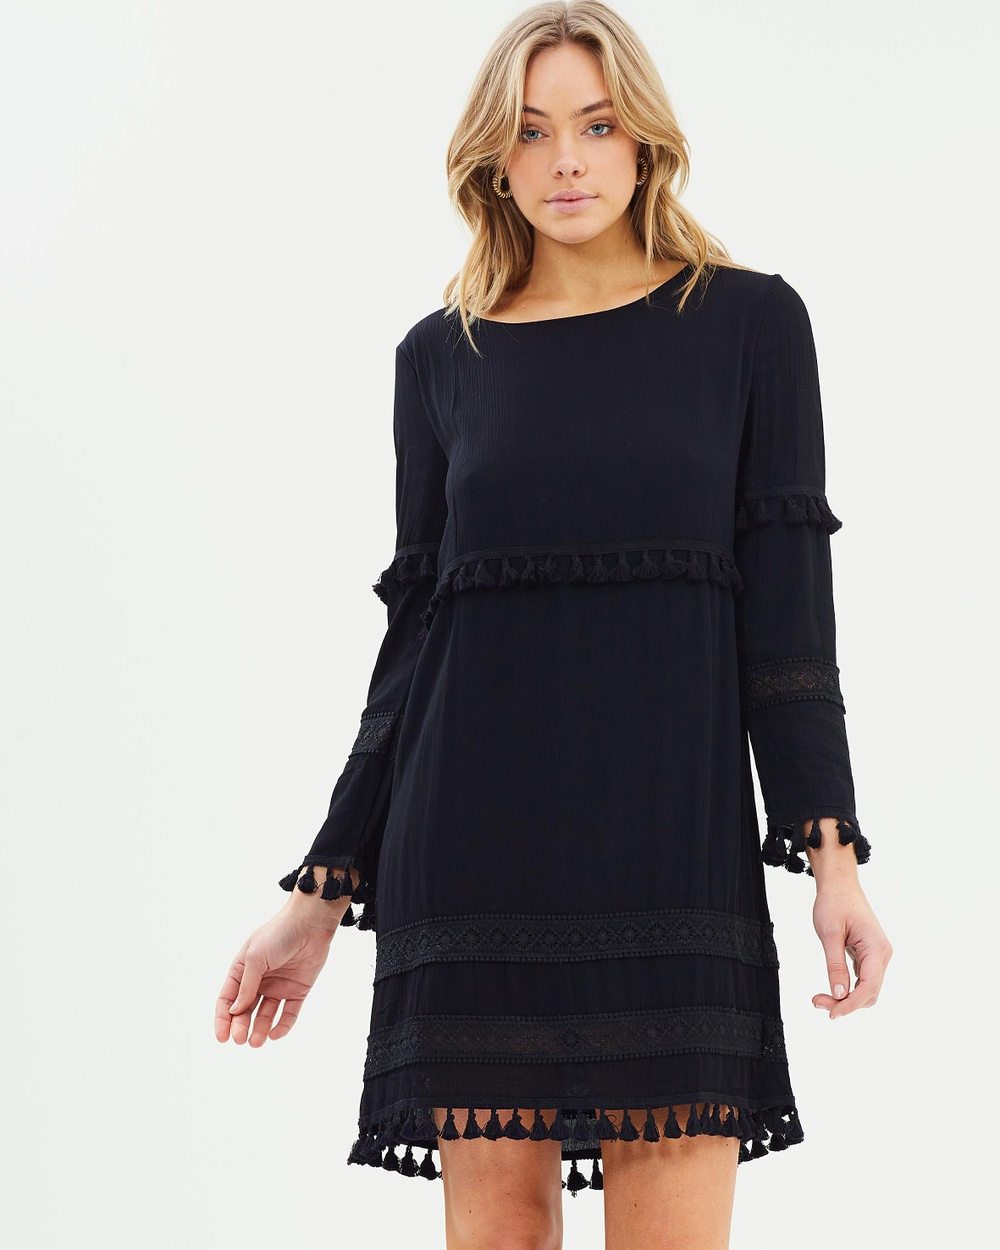 Sass Free Spirit Tassle Shift Dress Dresses Black Free Spirit Tassle Shift Dress